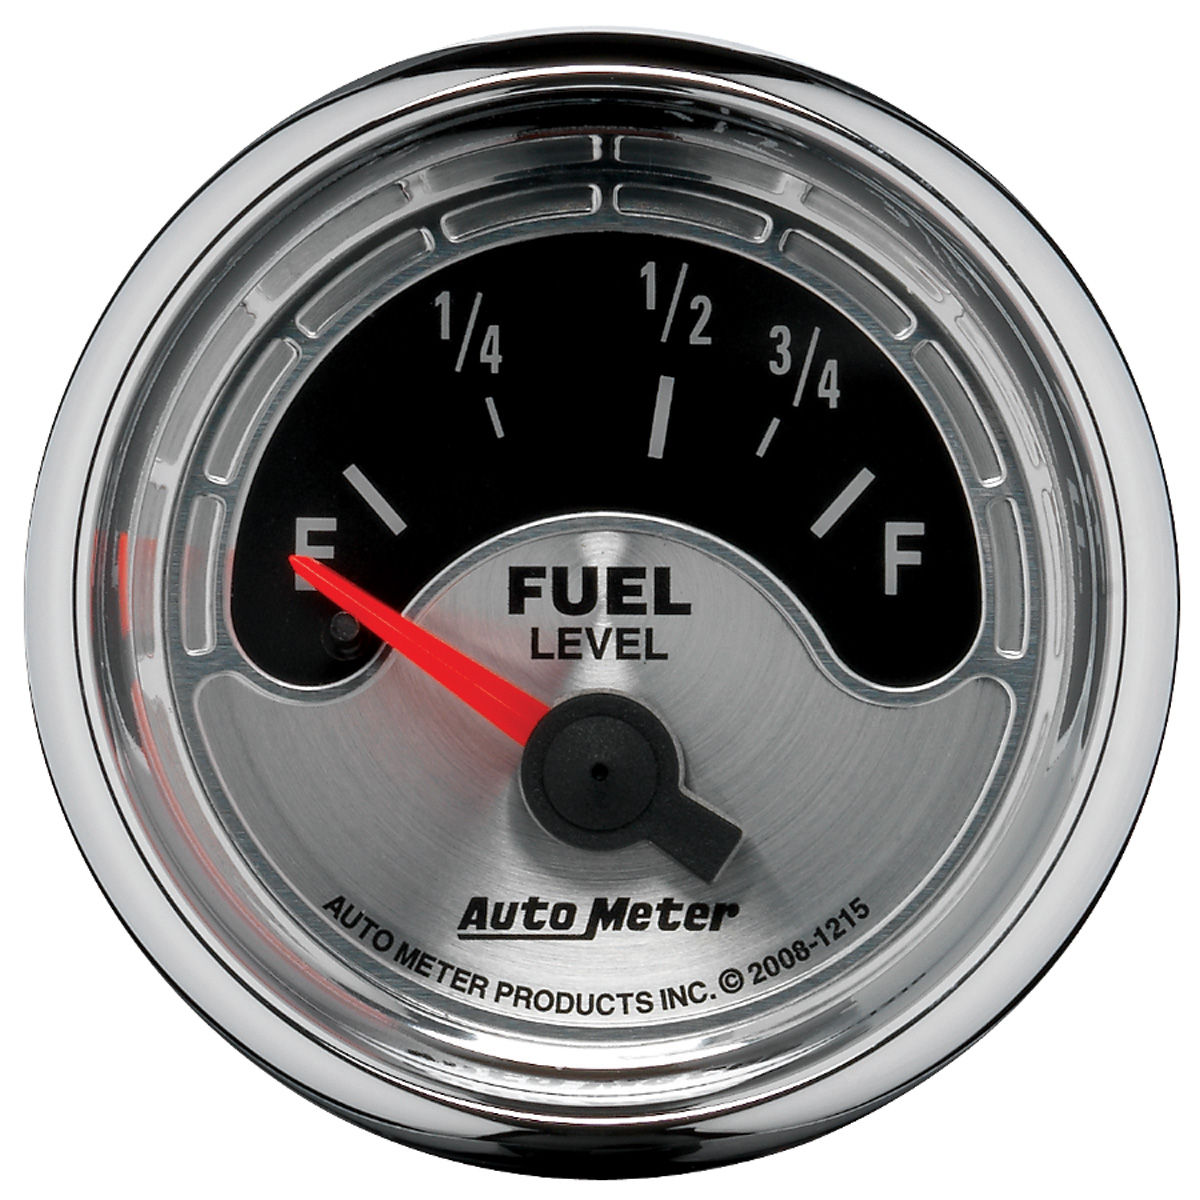 "Photo of Gauge, American Muscle Series 2-1/16"" fuel level (OHMS 73 empty/10 full)"